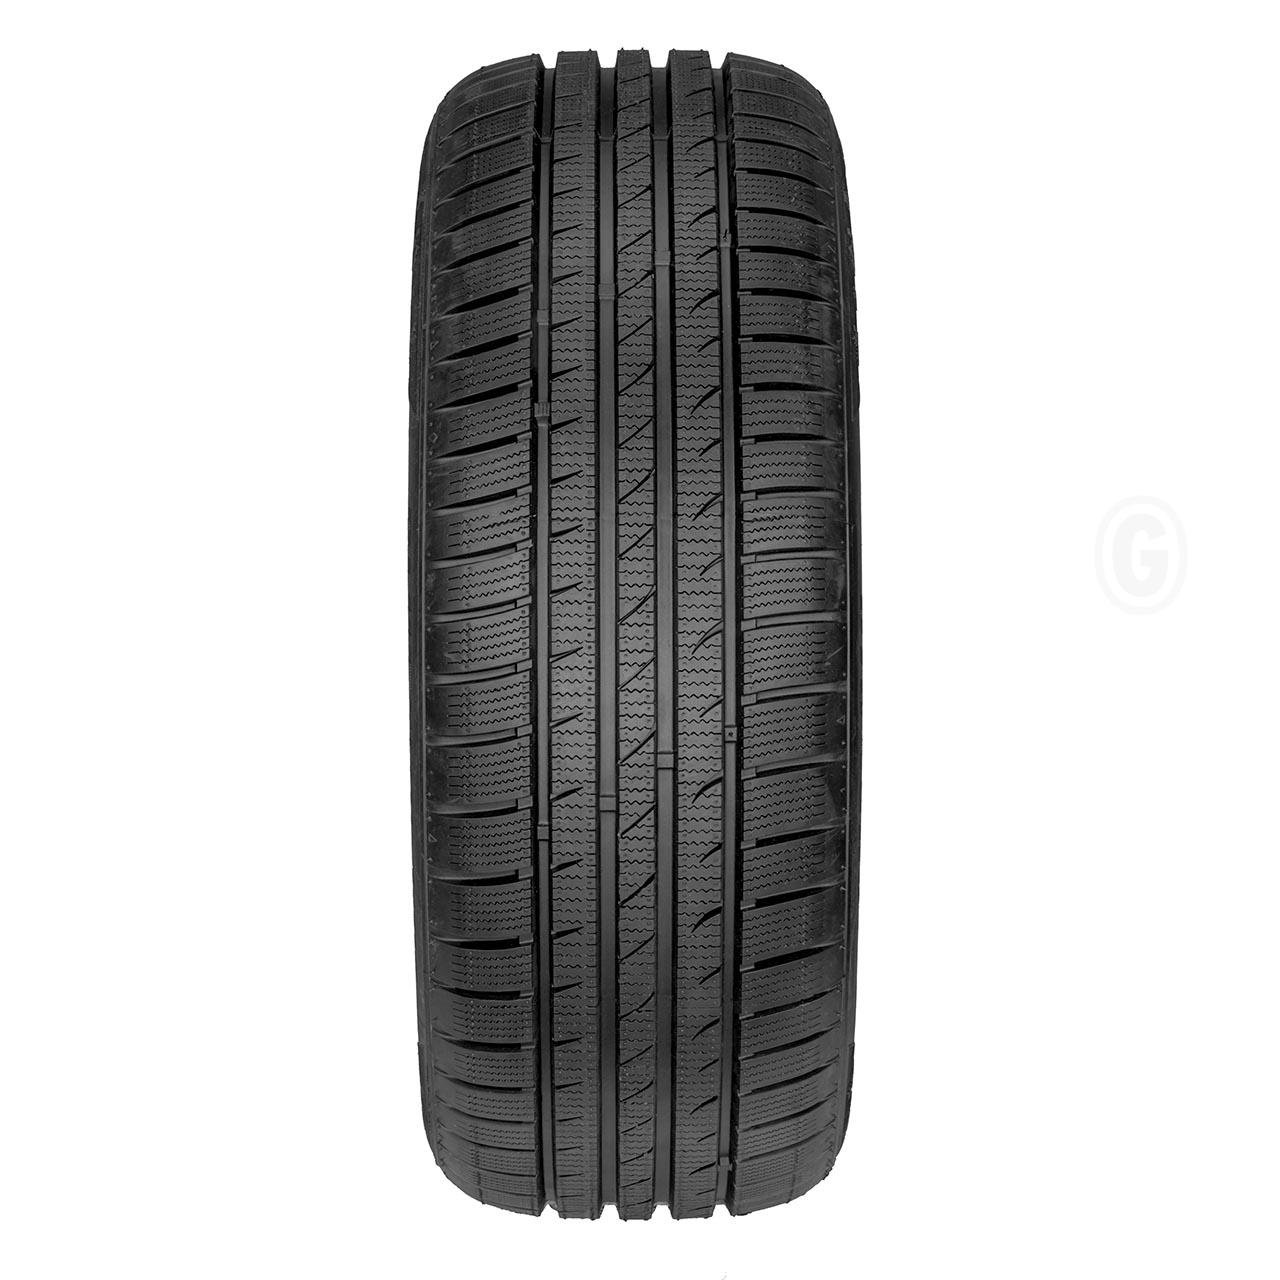 Fortuna Gowin UHP 205/55R16 91H